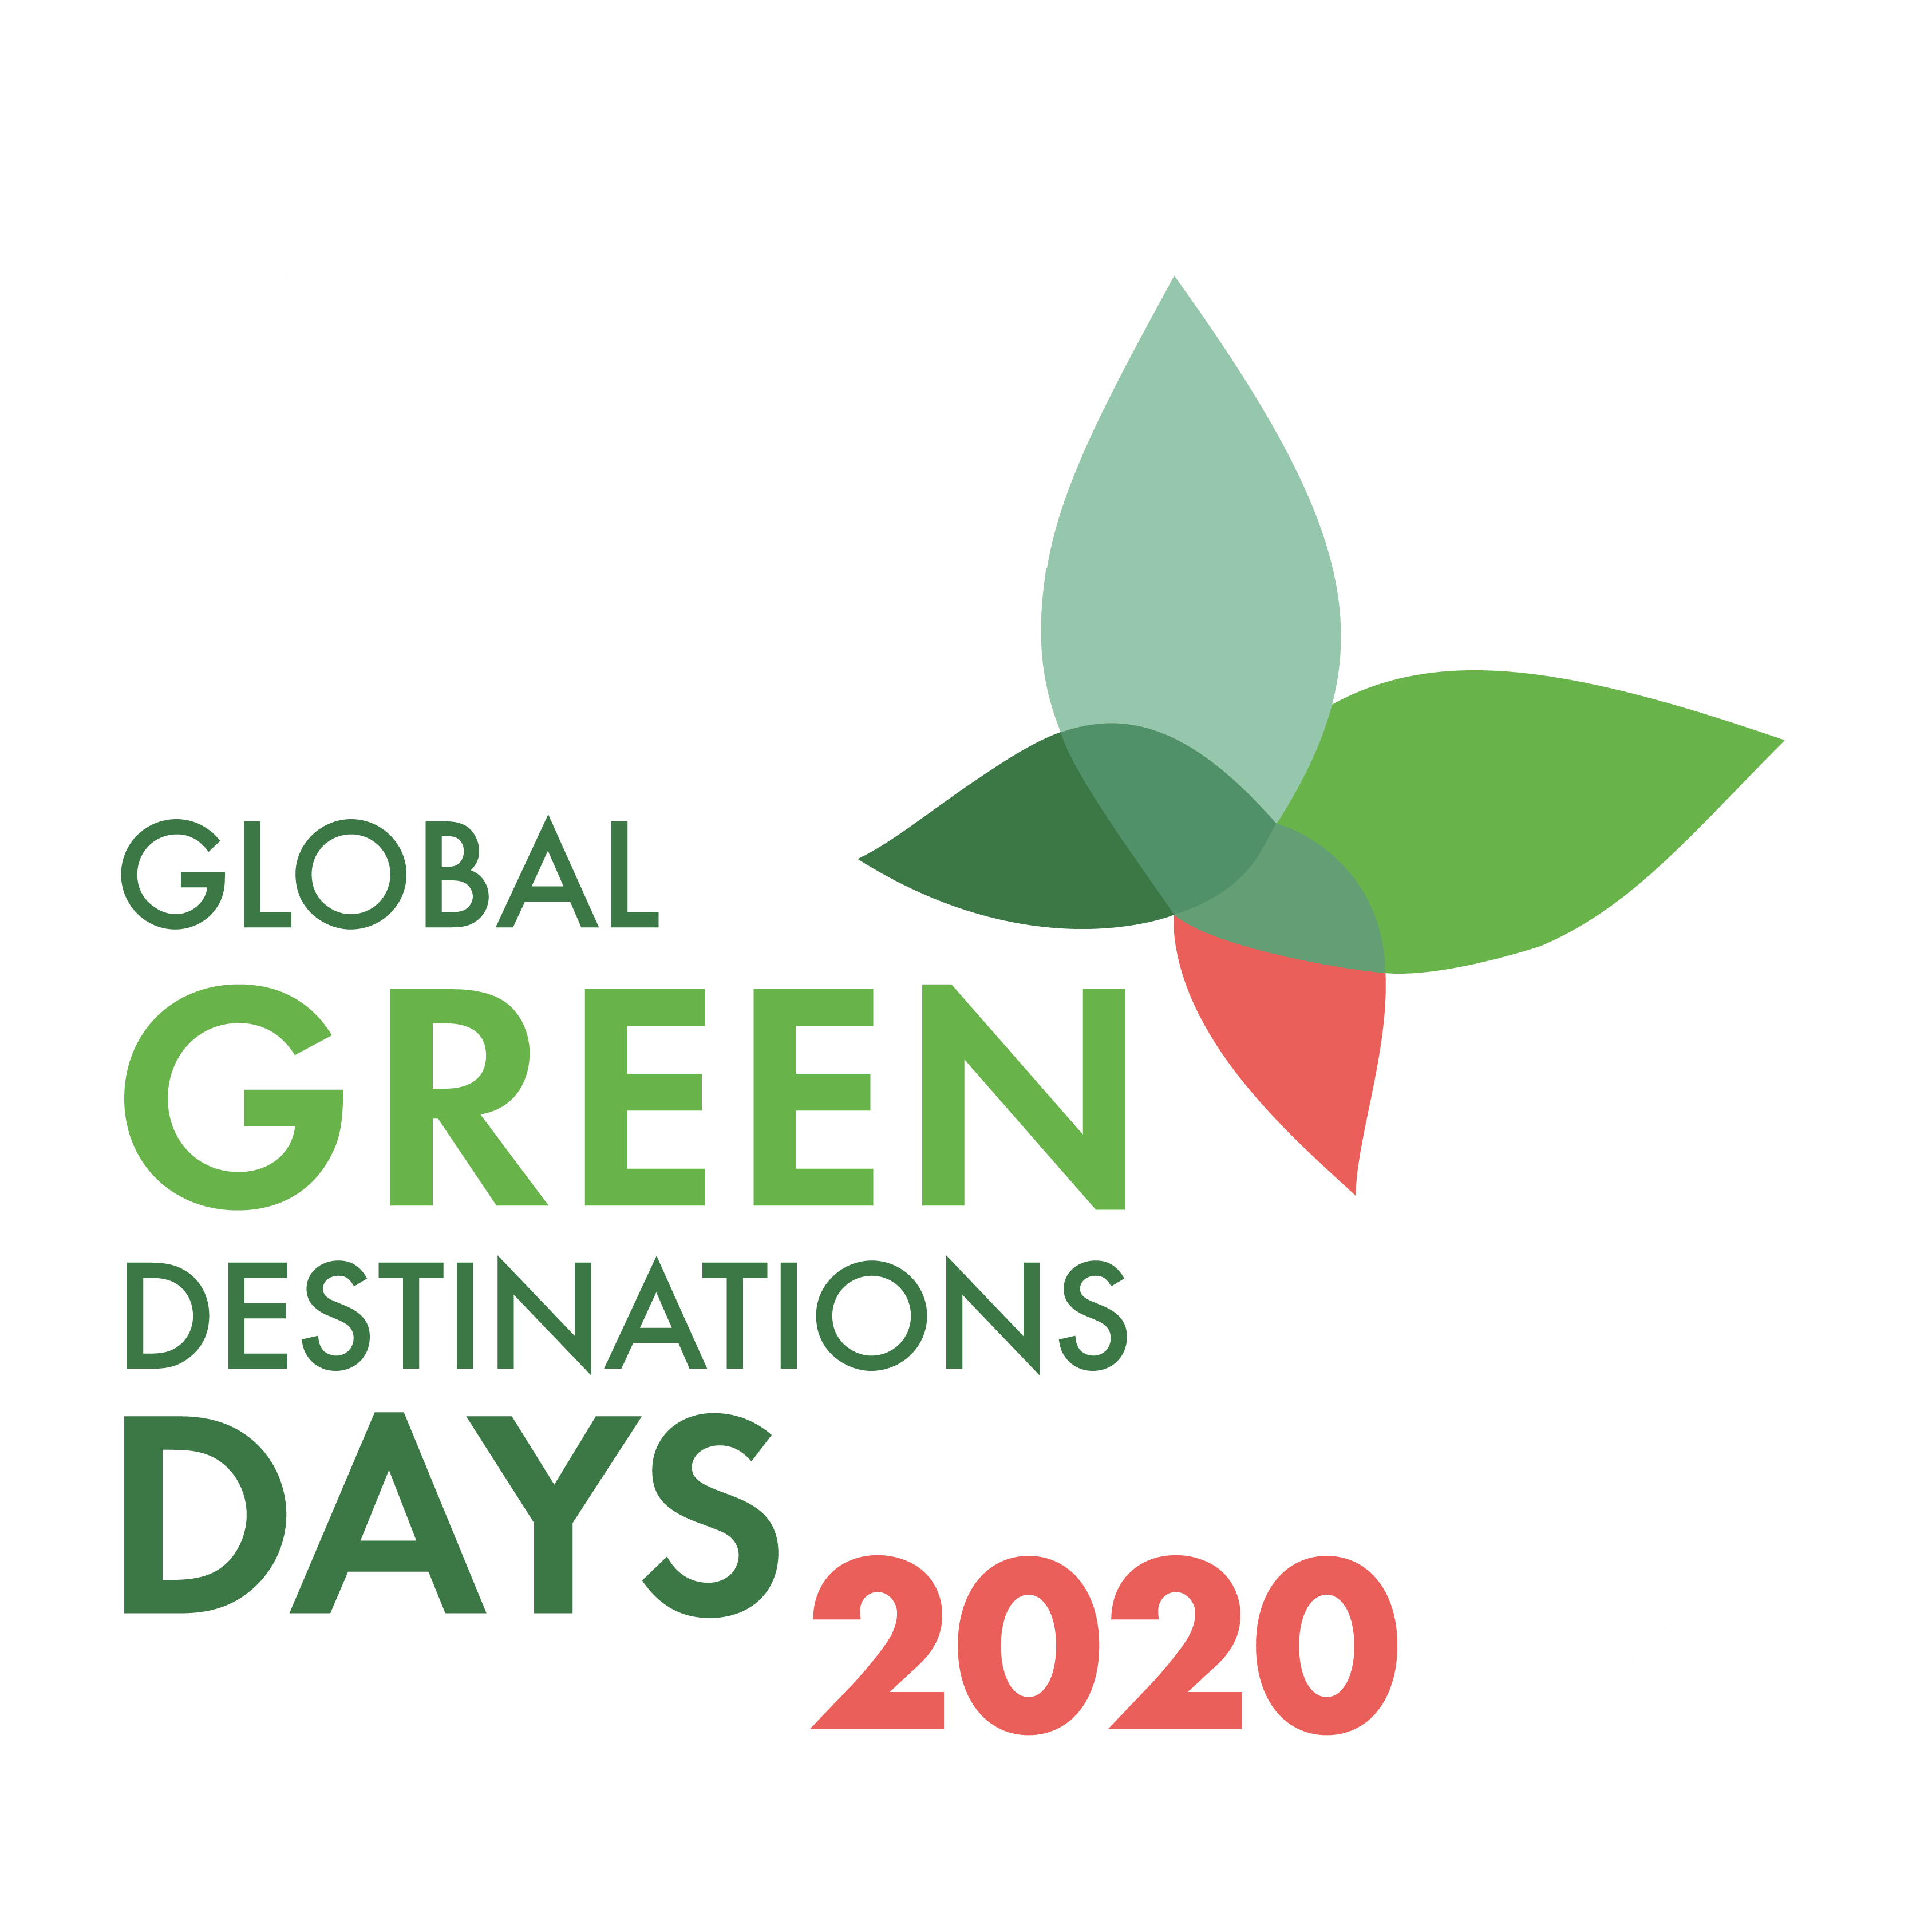 Global Green Destinations